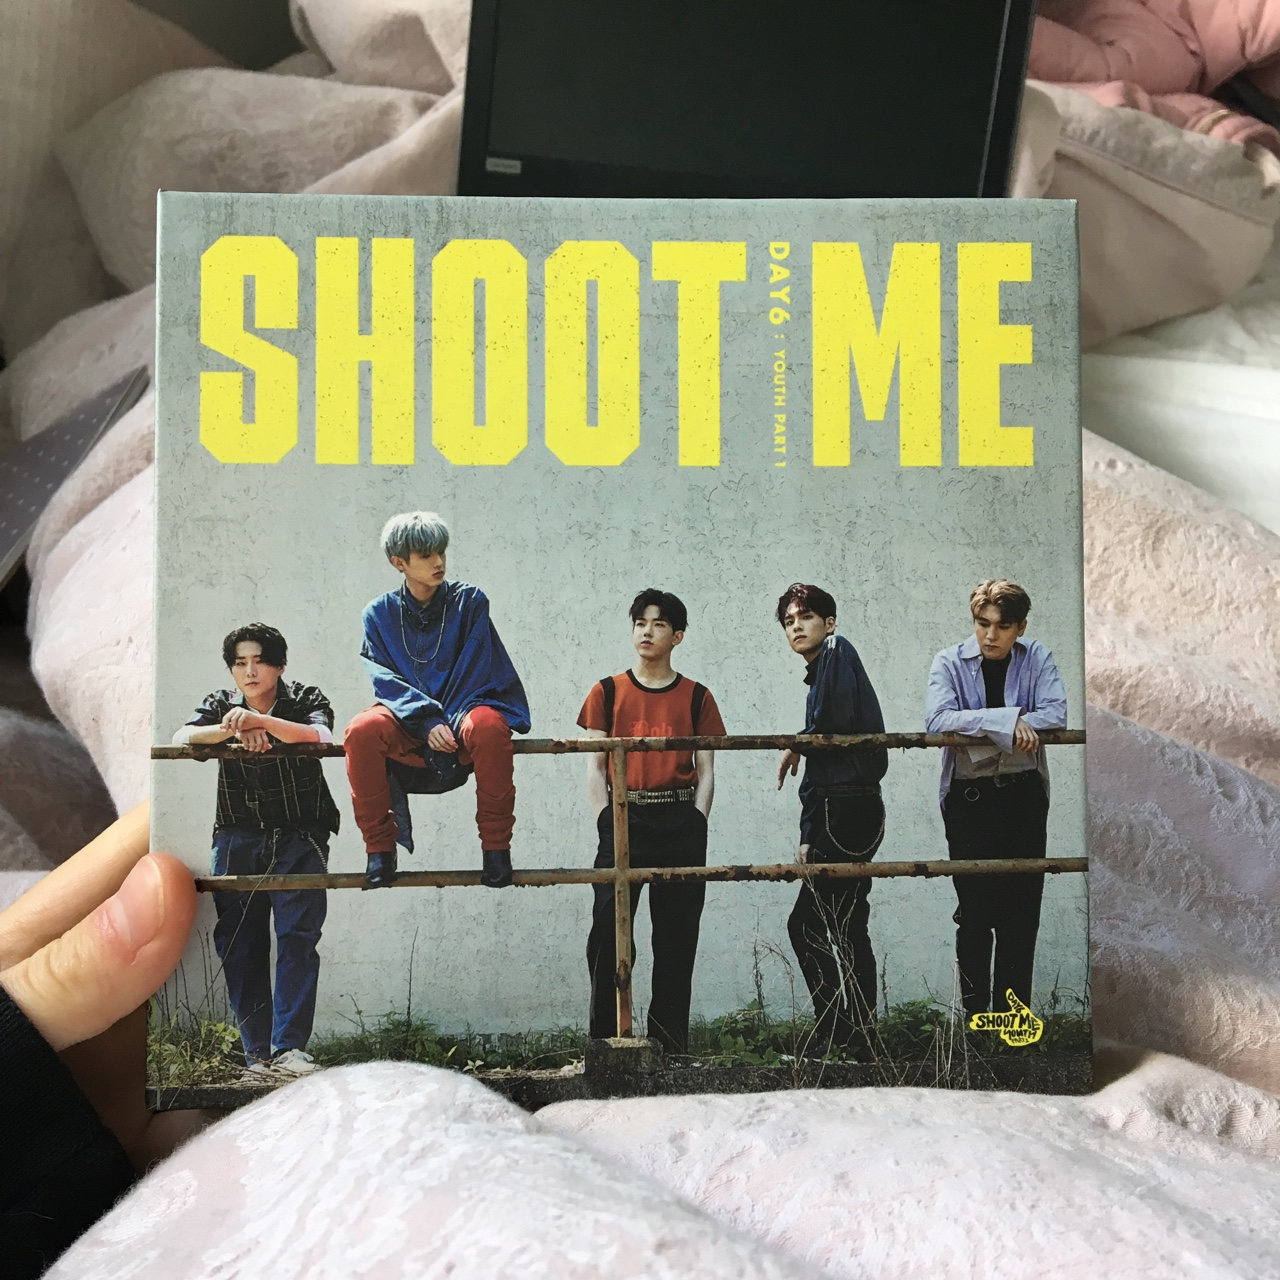 day6 shoot me album trigger version : comes with    - Depop